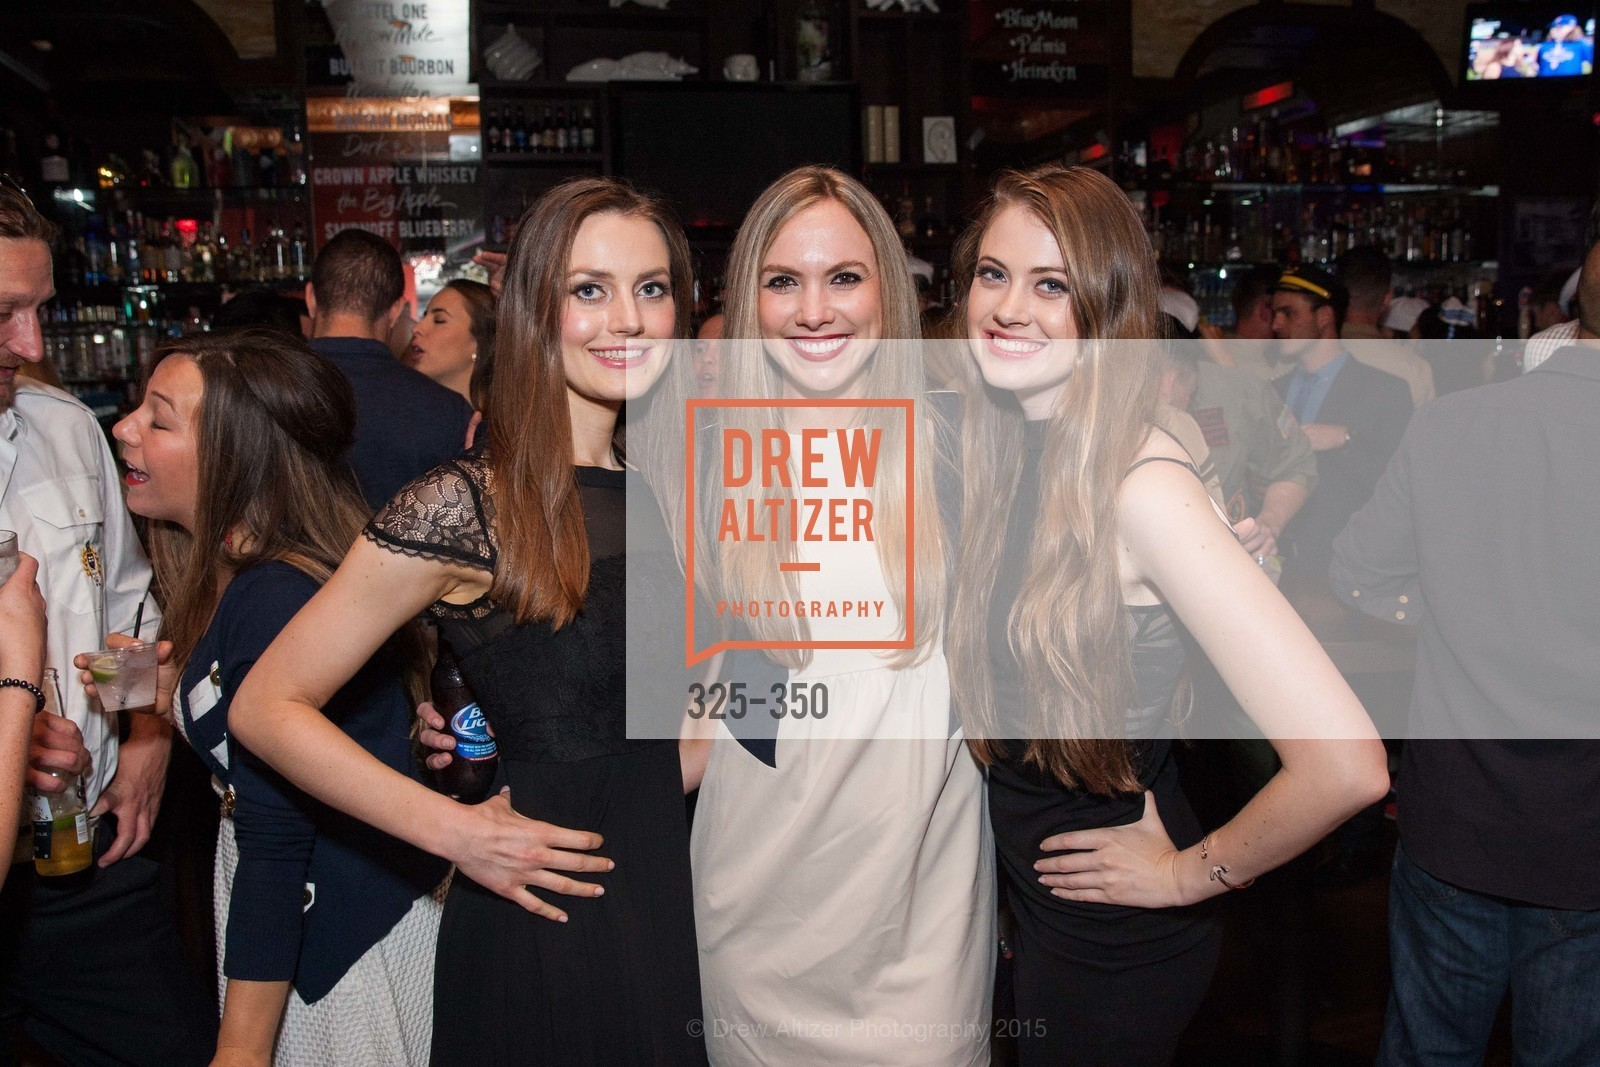 Kristen Glass, Michelle Bertino, Stephanie Glass, Spinsters of San Francisco Presents: Fleet or Flight, Mayes Oyster House. 1233 Polk St, October 9th, 2015,Drew Altizer, Drew Altizer Photography, full-service agency, private events, San Francisco photographer, photographer california